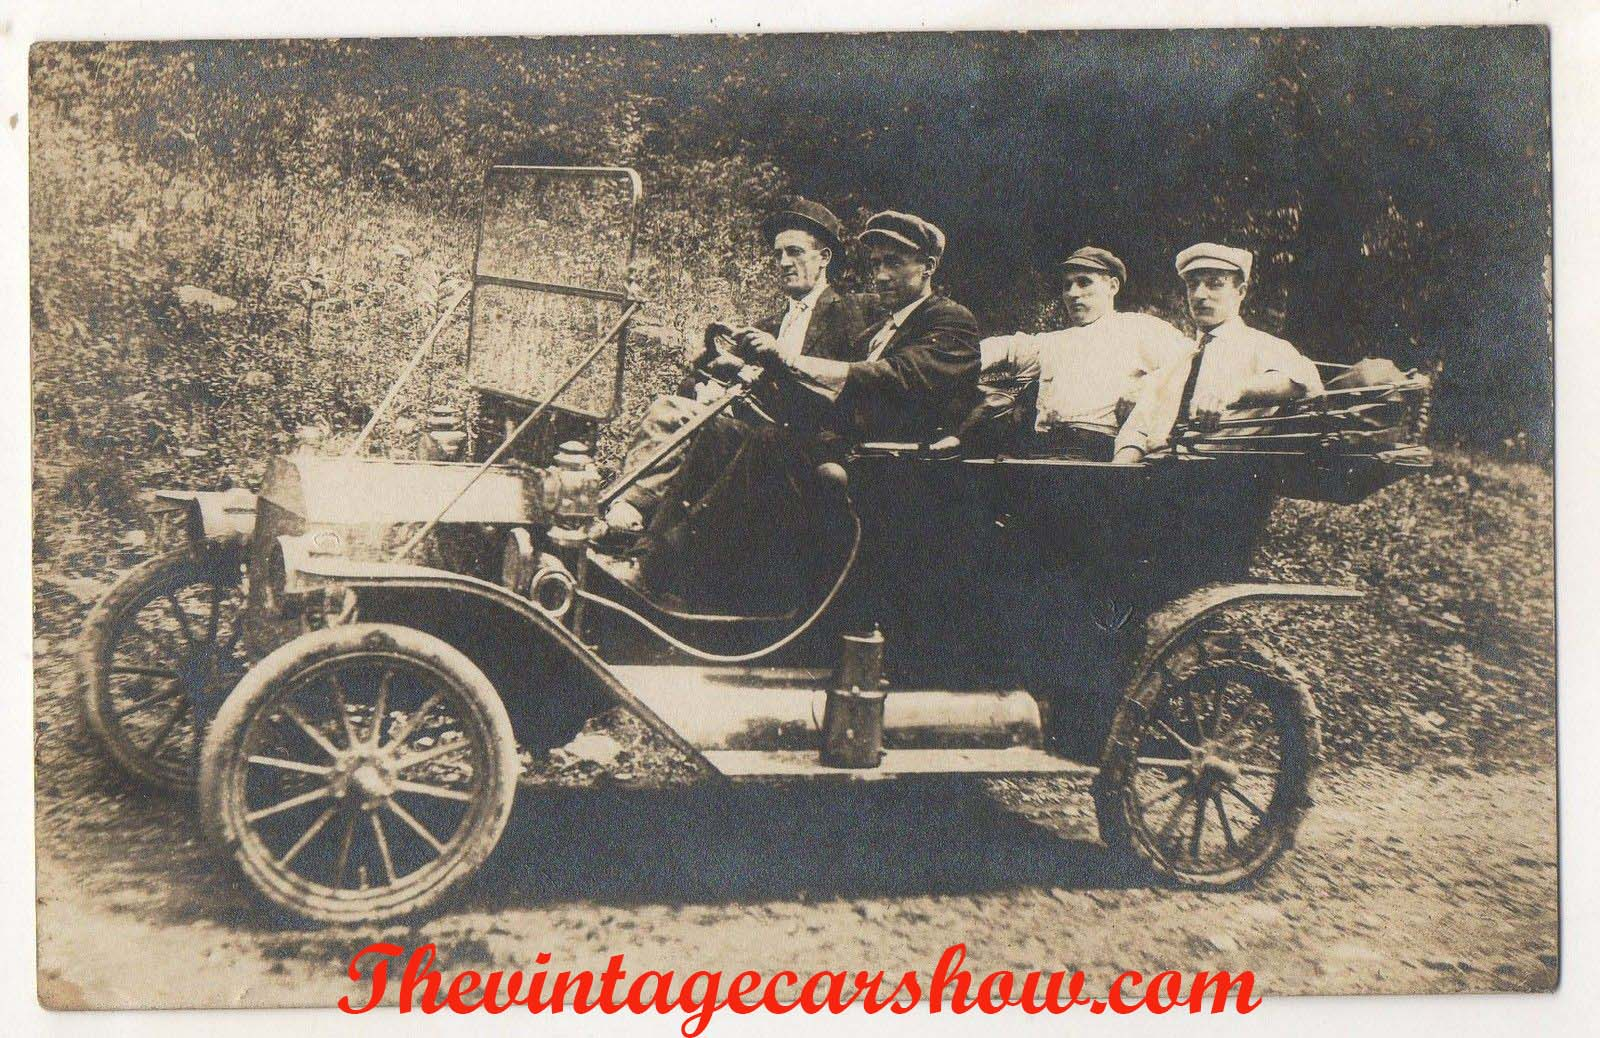 Grand Valley Auto >> Vintage Cars 1900 | The Vintage Car Show